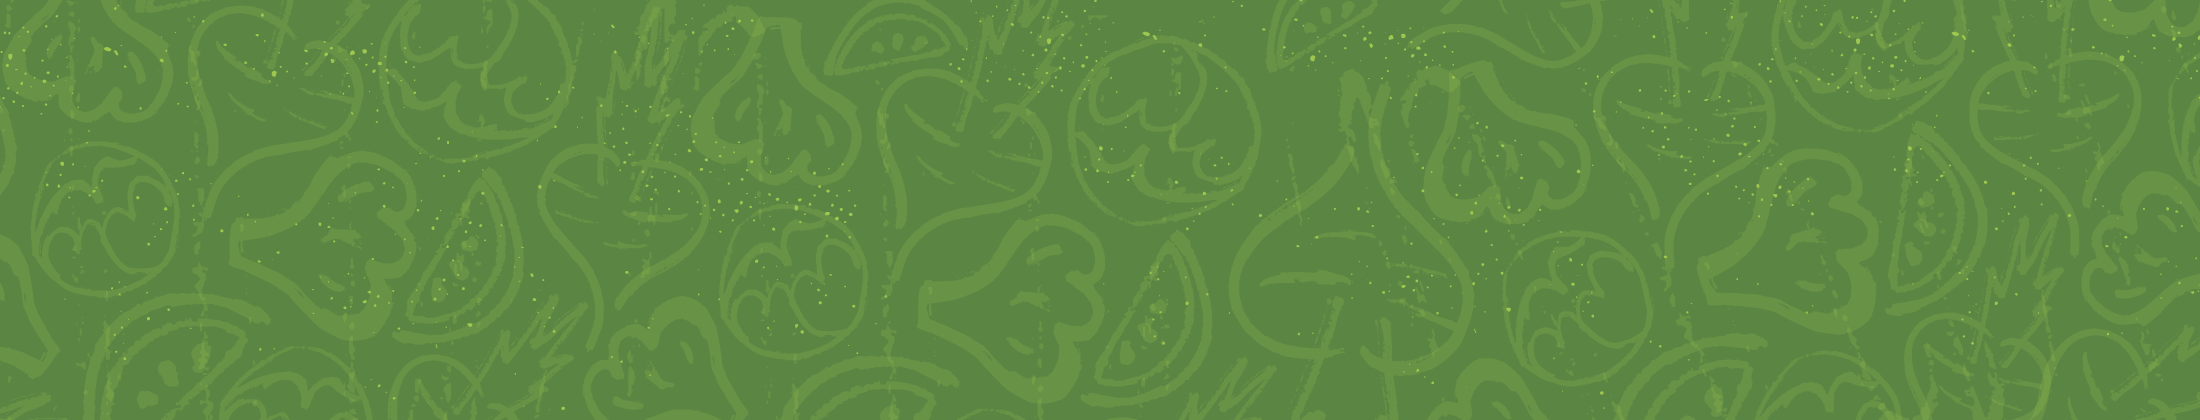 Green background with vegetable illustrations overlaid